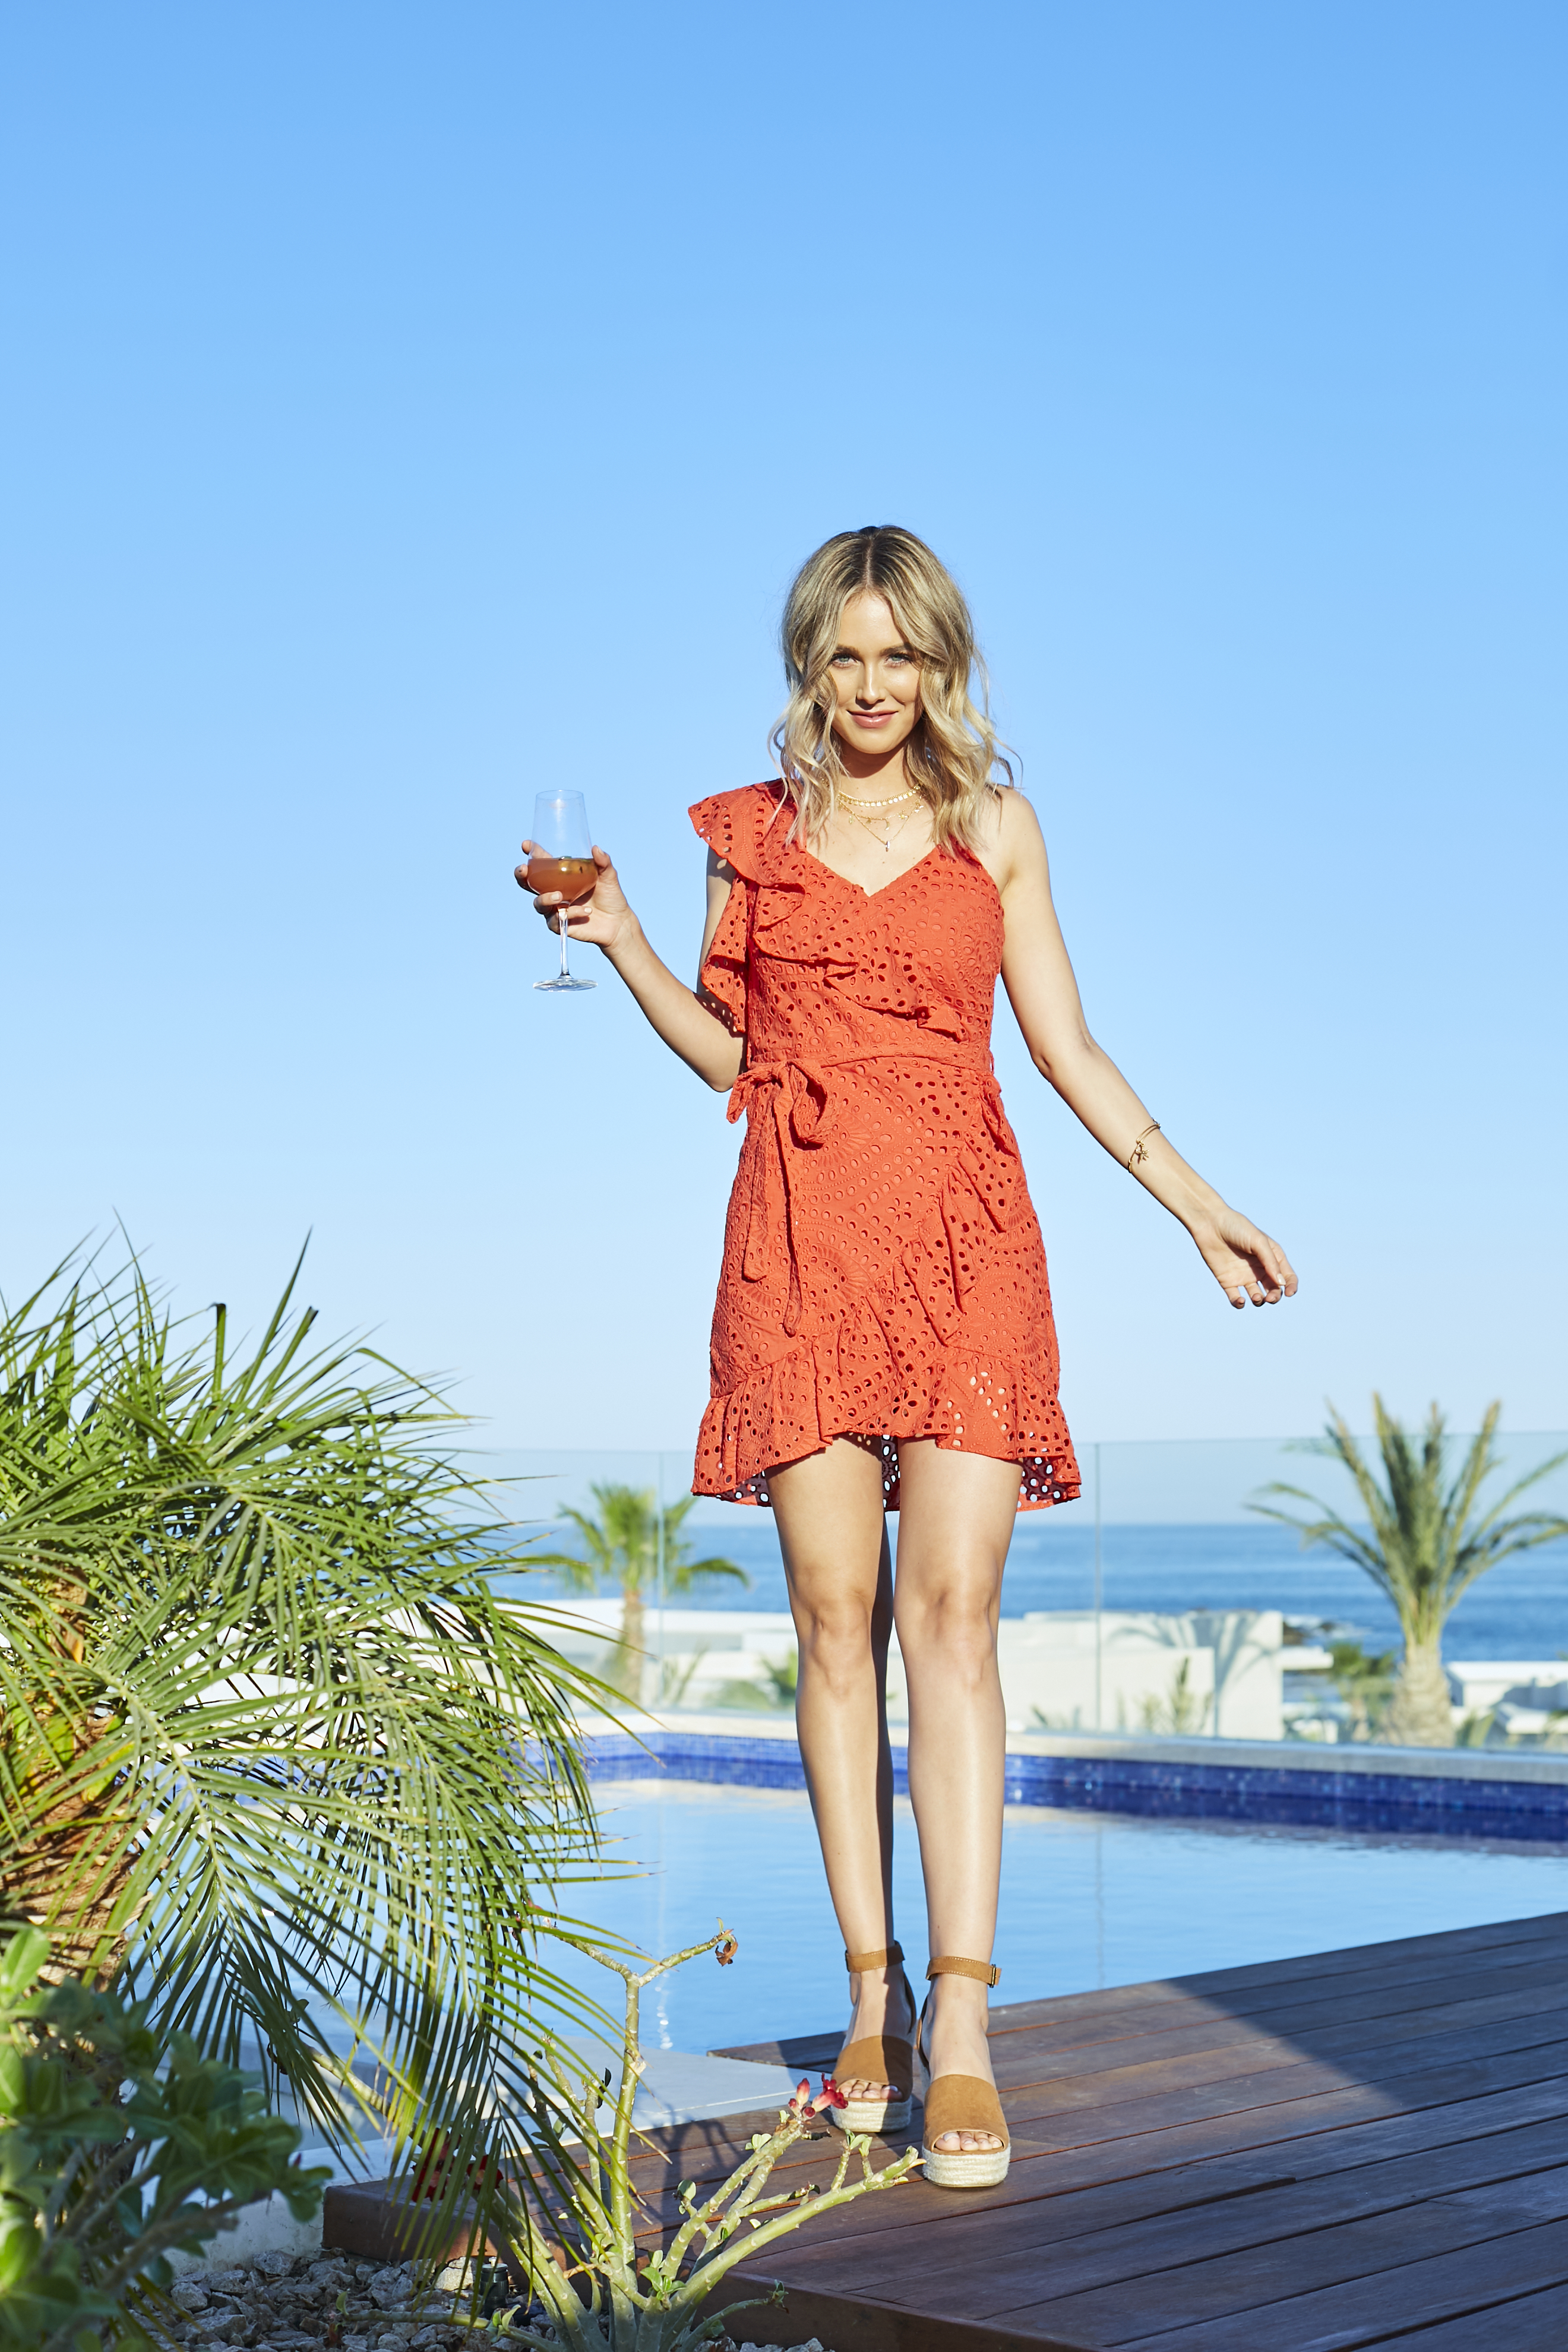 This is How Fashion Girls Wear Dress for Vacation via Sheridan Gregory